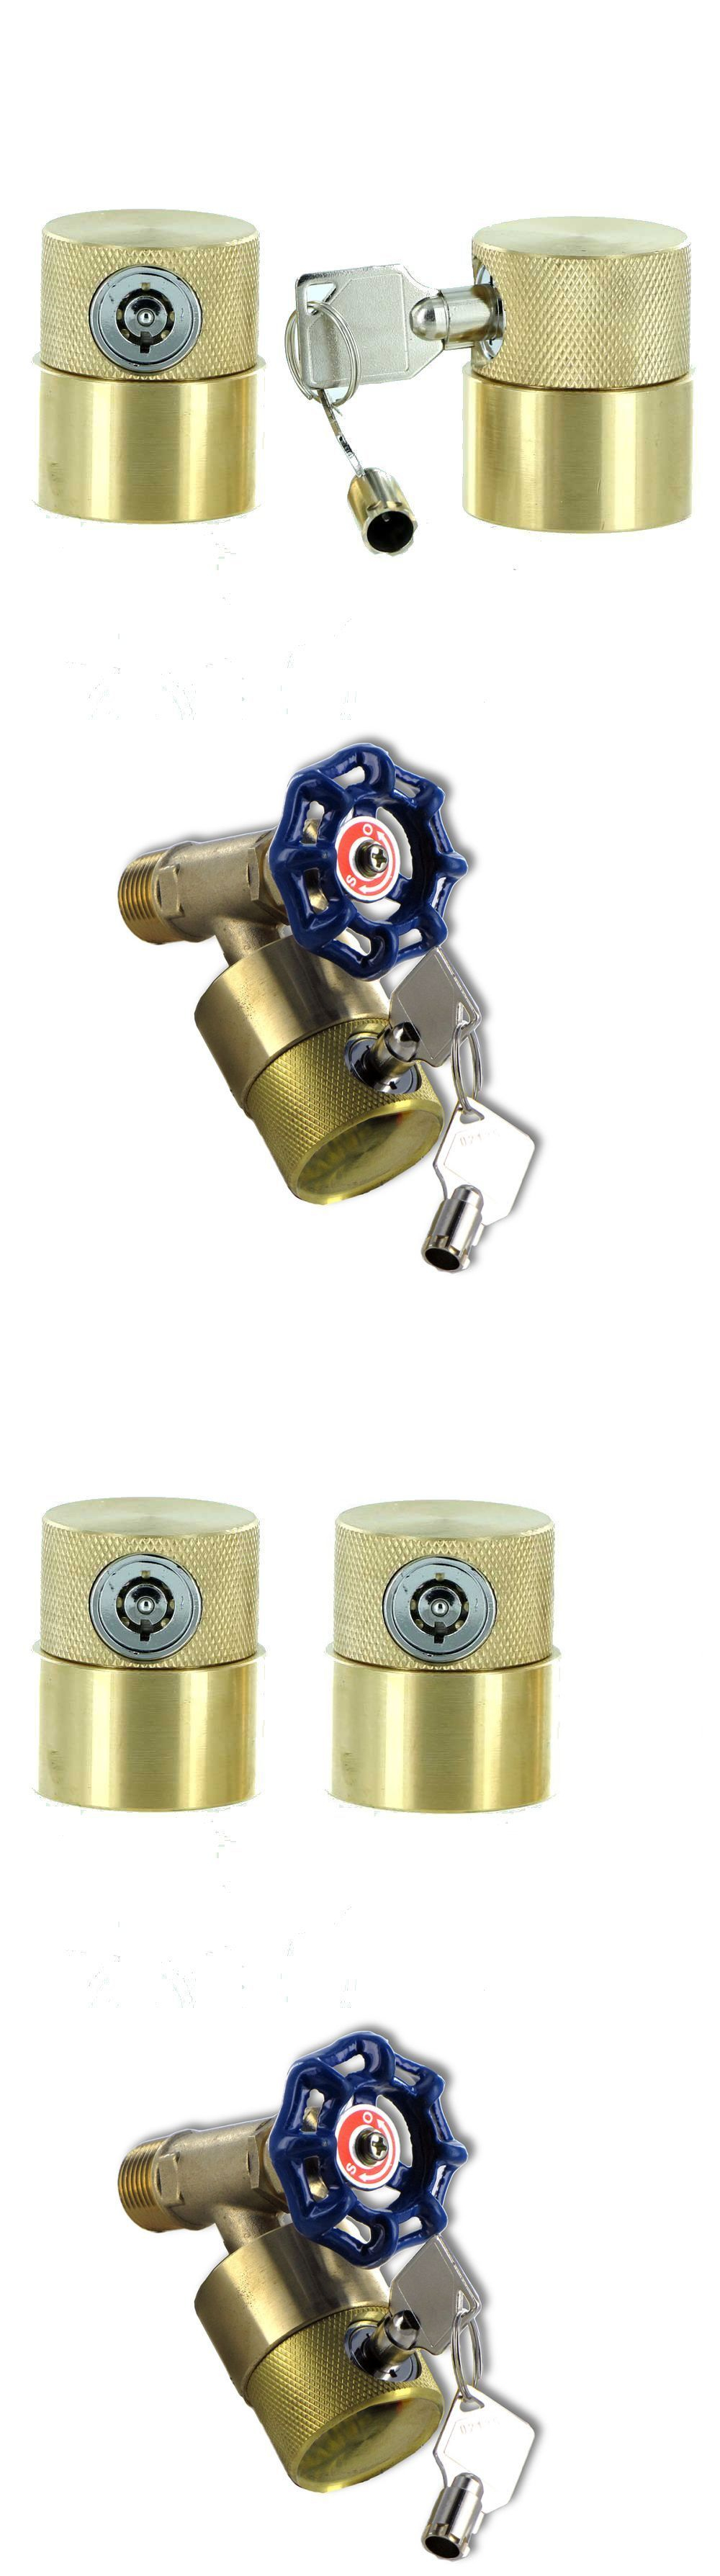 Spigots 181012: Pack Of 2 - Water Faucet Lock Fss 50 - Theft ...